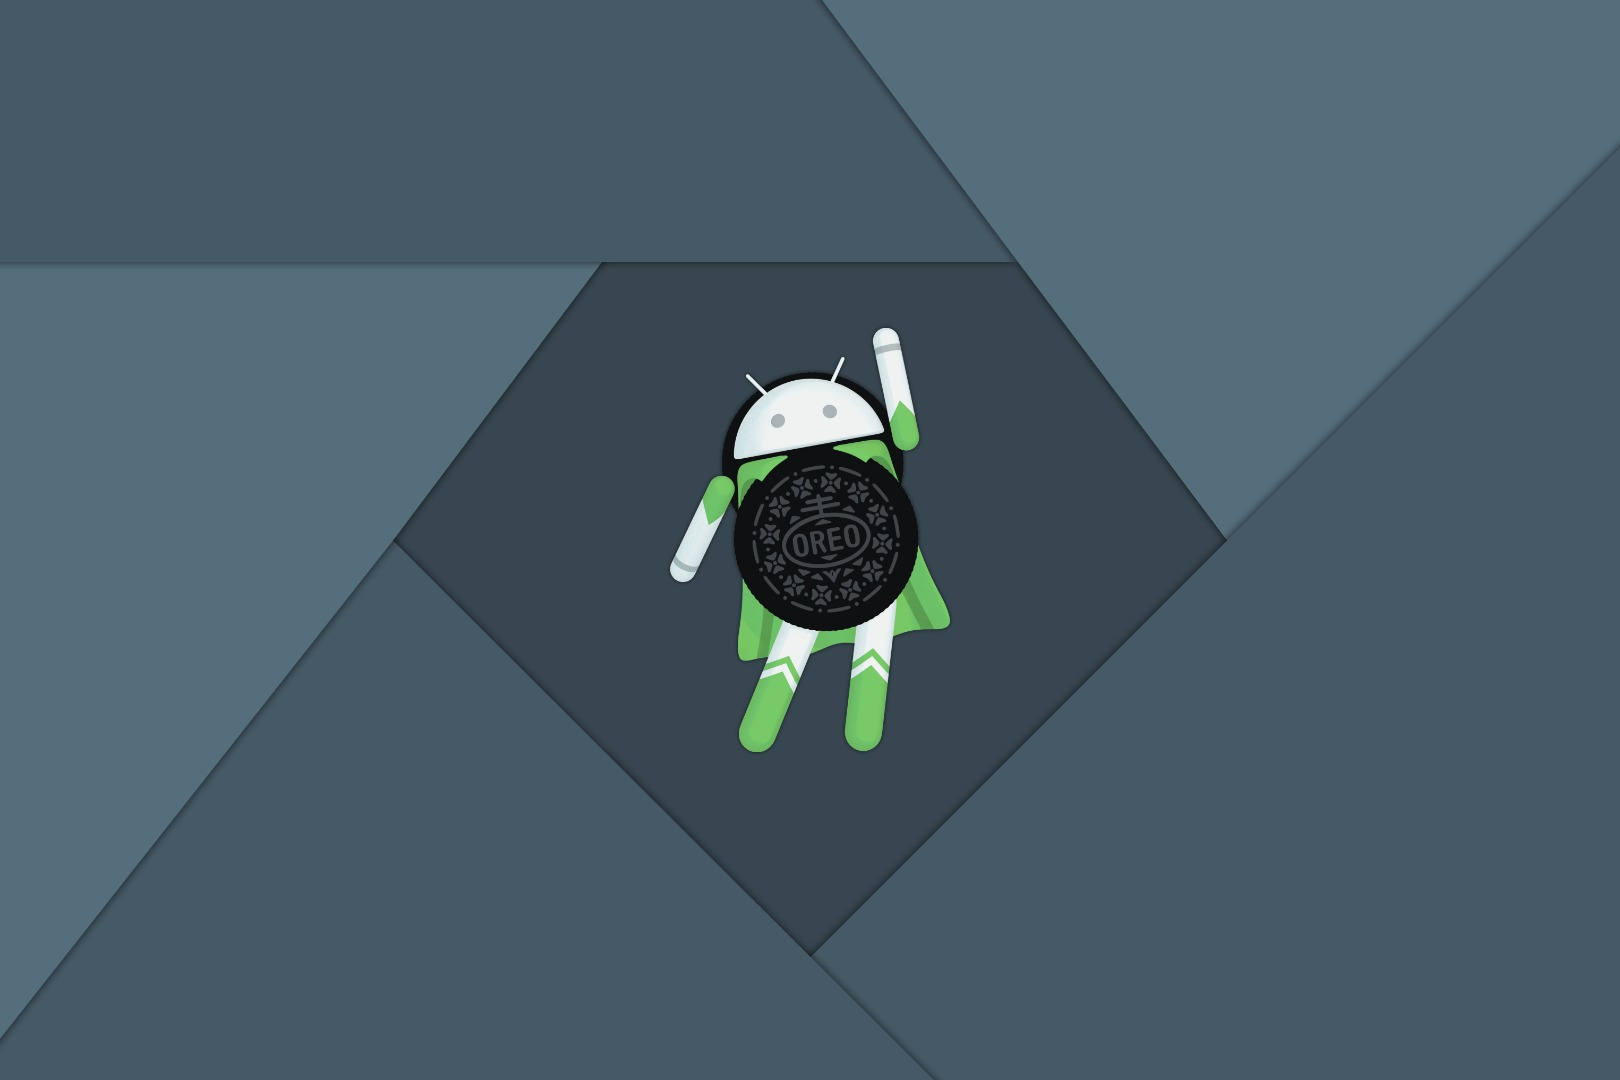 Android Oreo HD Wallpapers in Material Design – Free Download